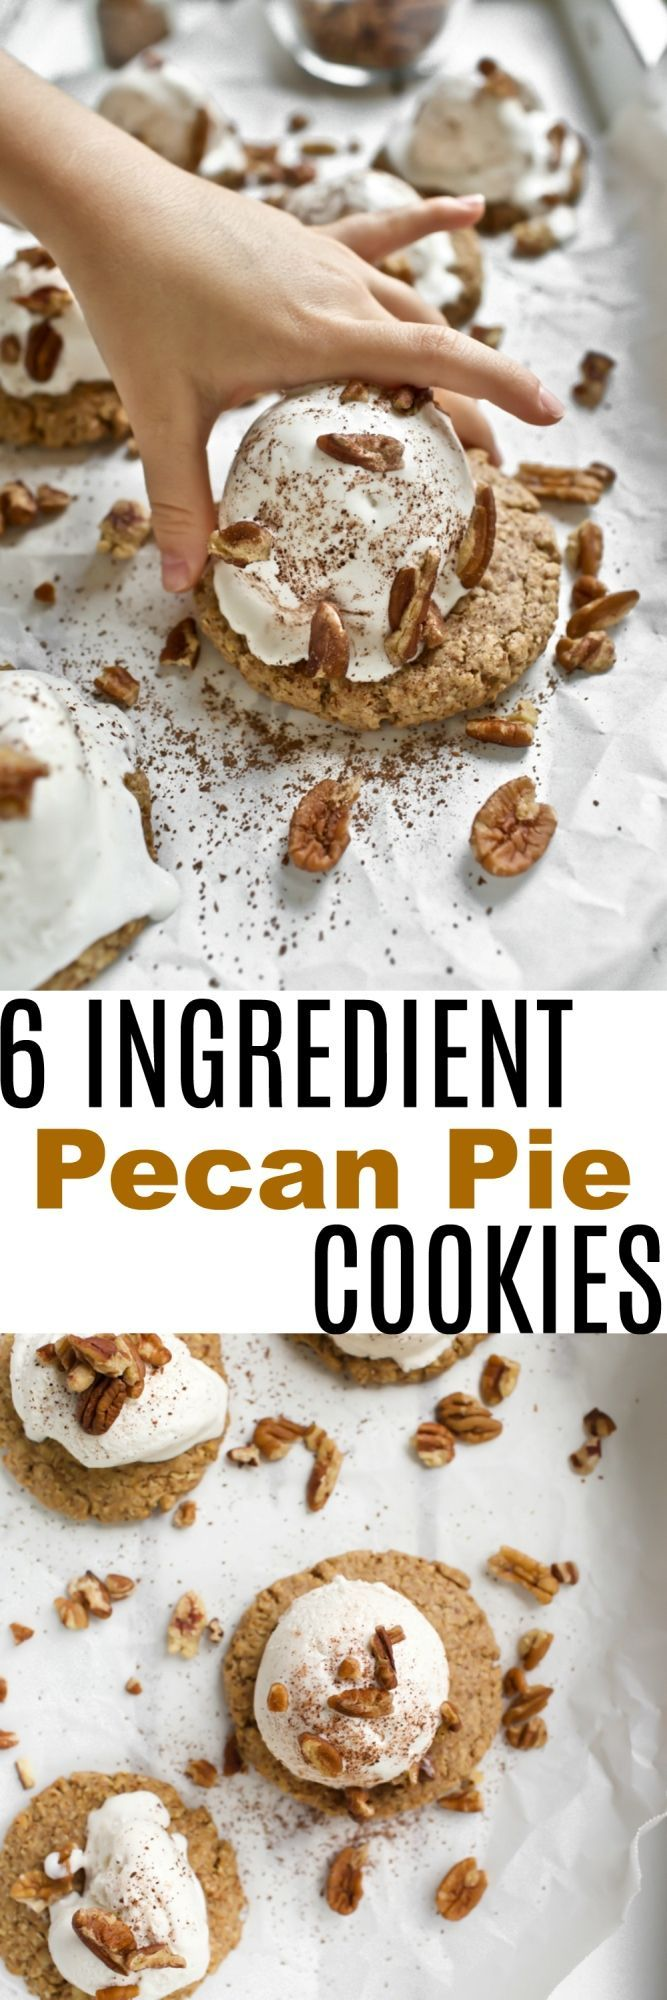 Vegan Pecan Pie Cookies that are just 6 ingredients, dairy-free, gluten-free, oil-free and yet, delicious and buttery. Made with just oats, pecans, coconut sugar and maple syrup for the most natural sweetness that will remind you of a homemade pecan pie, but with much simpler steps. via @thevegan8